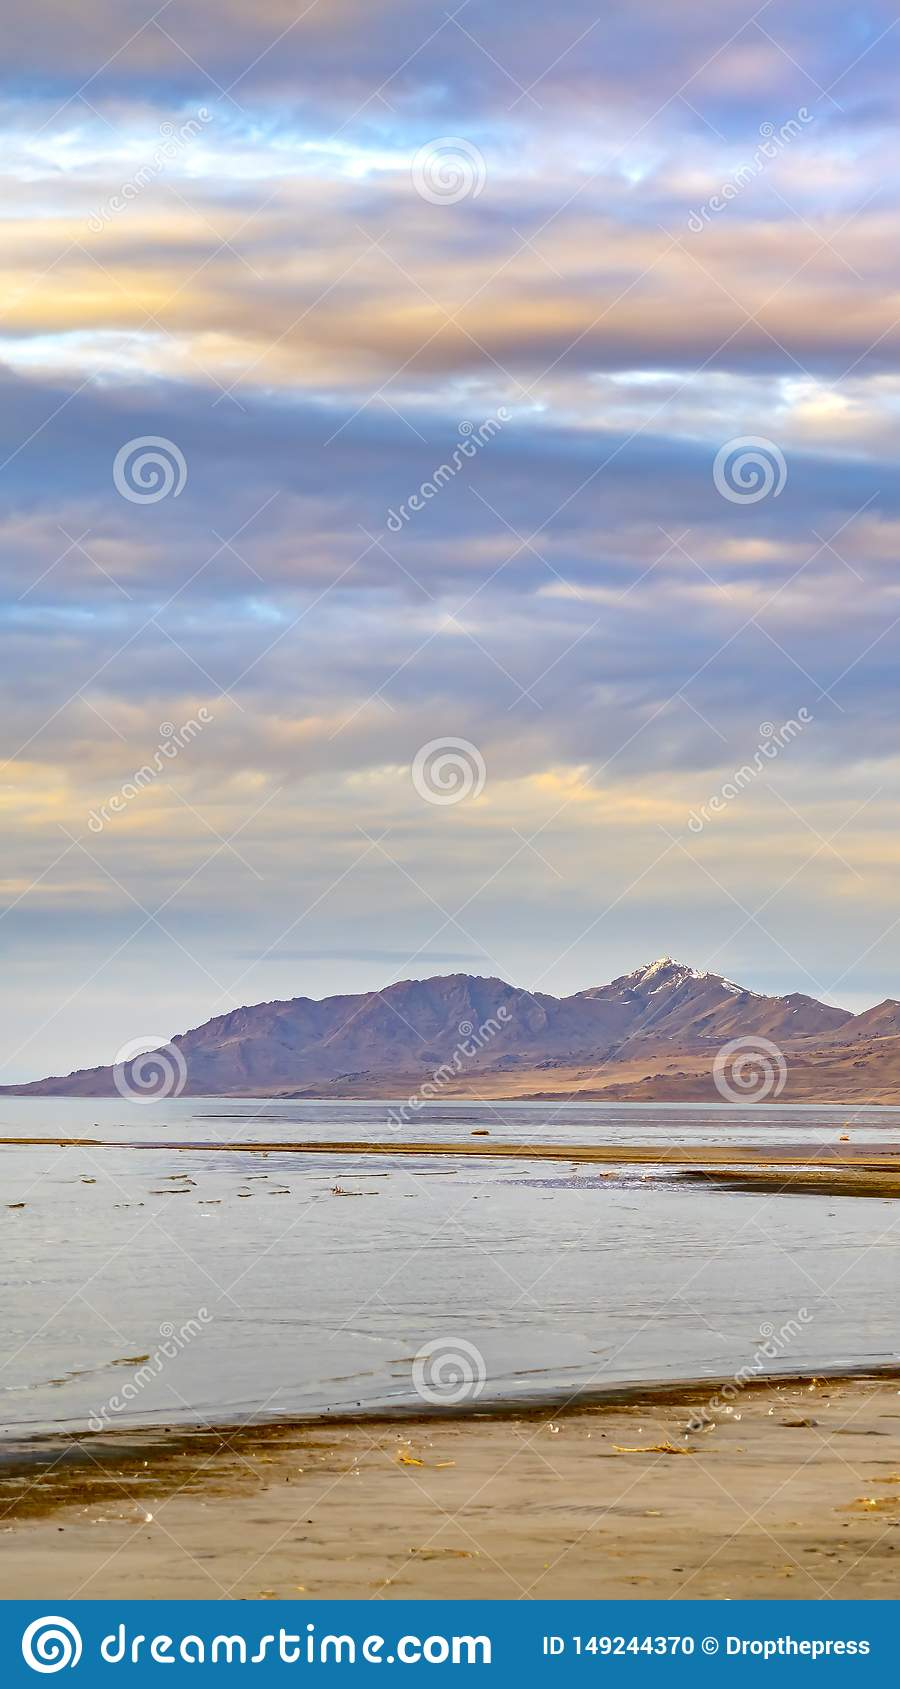 Vertical frame Panorama of a calm lake with vast sandy shore under cloud filled sky